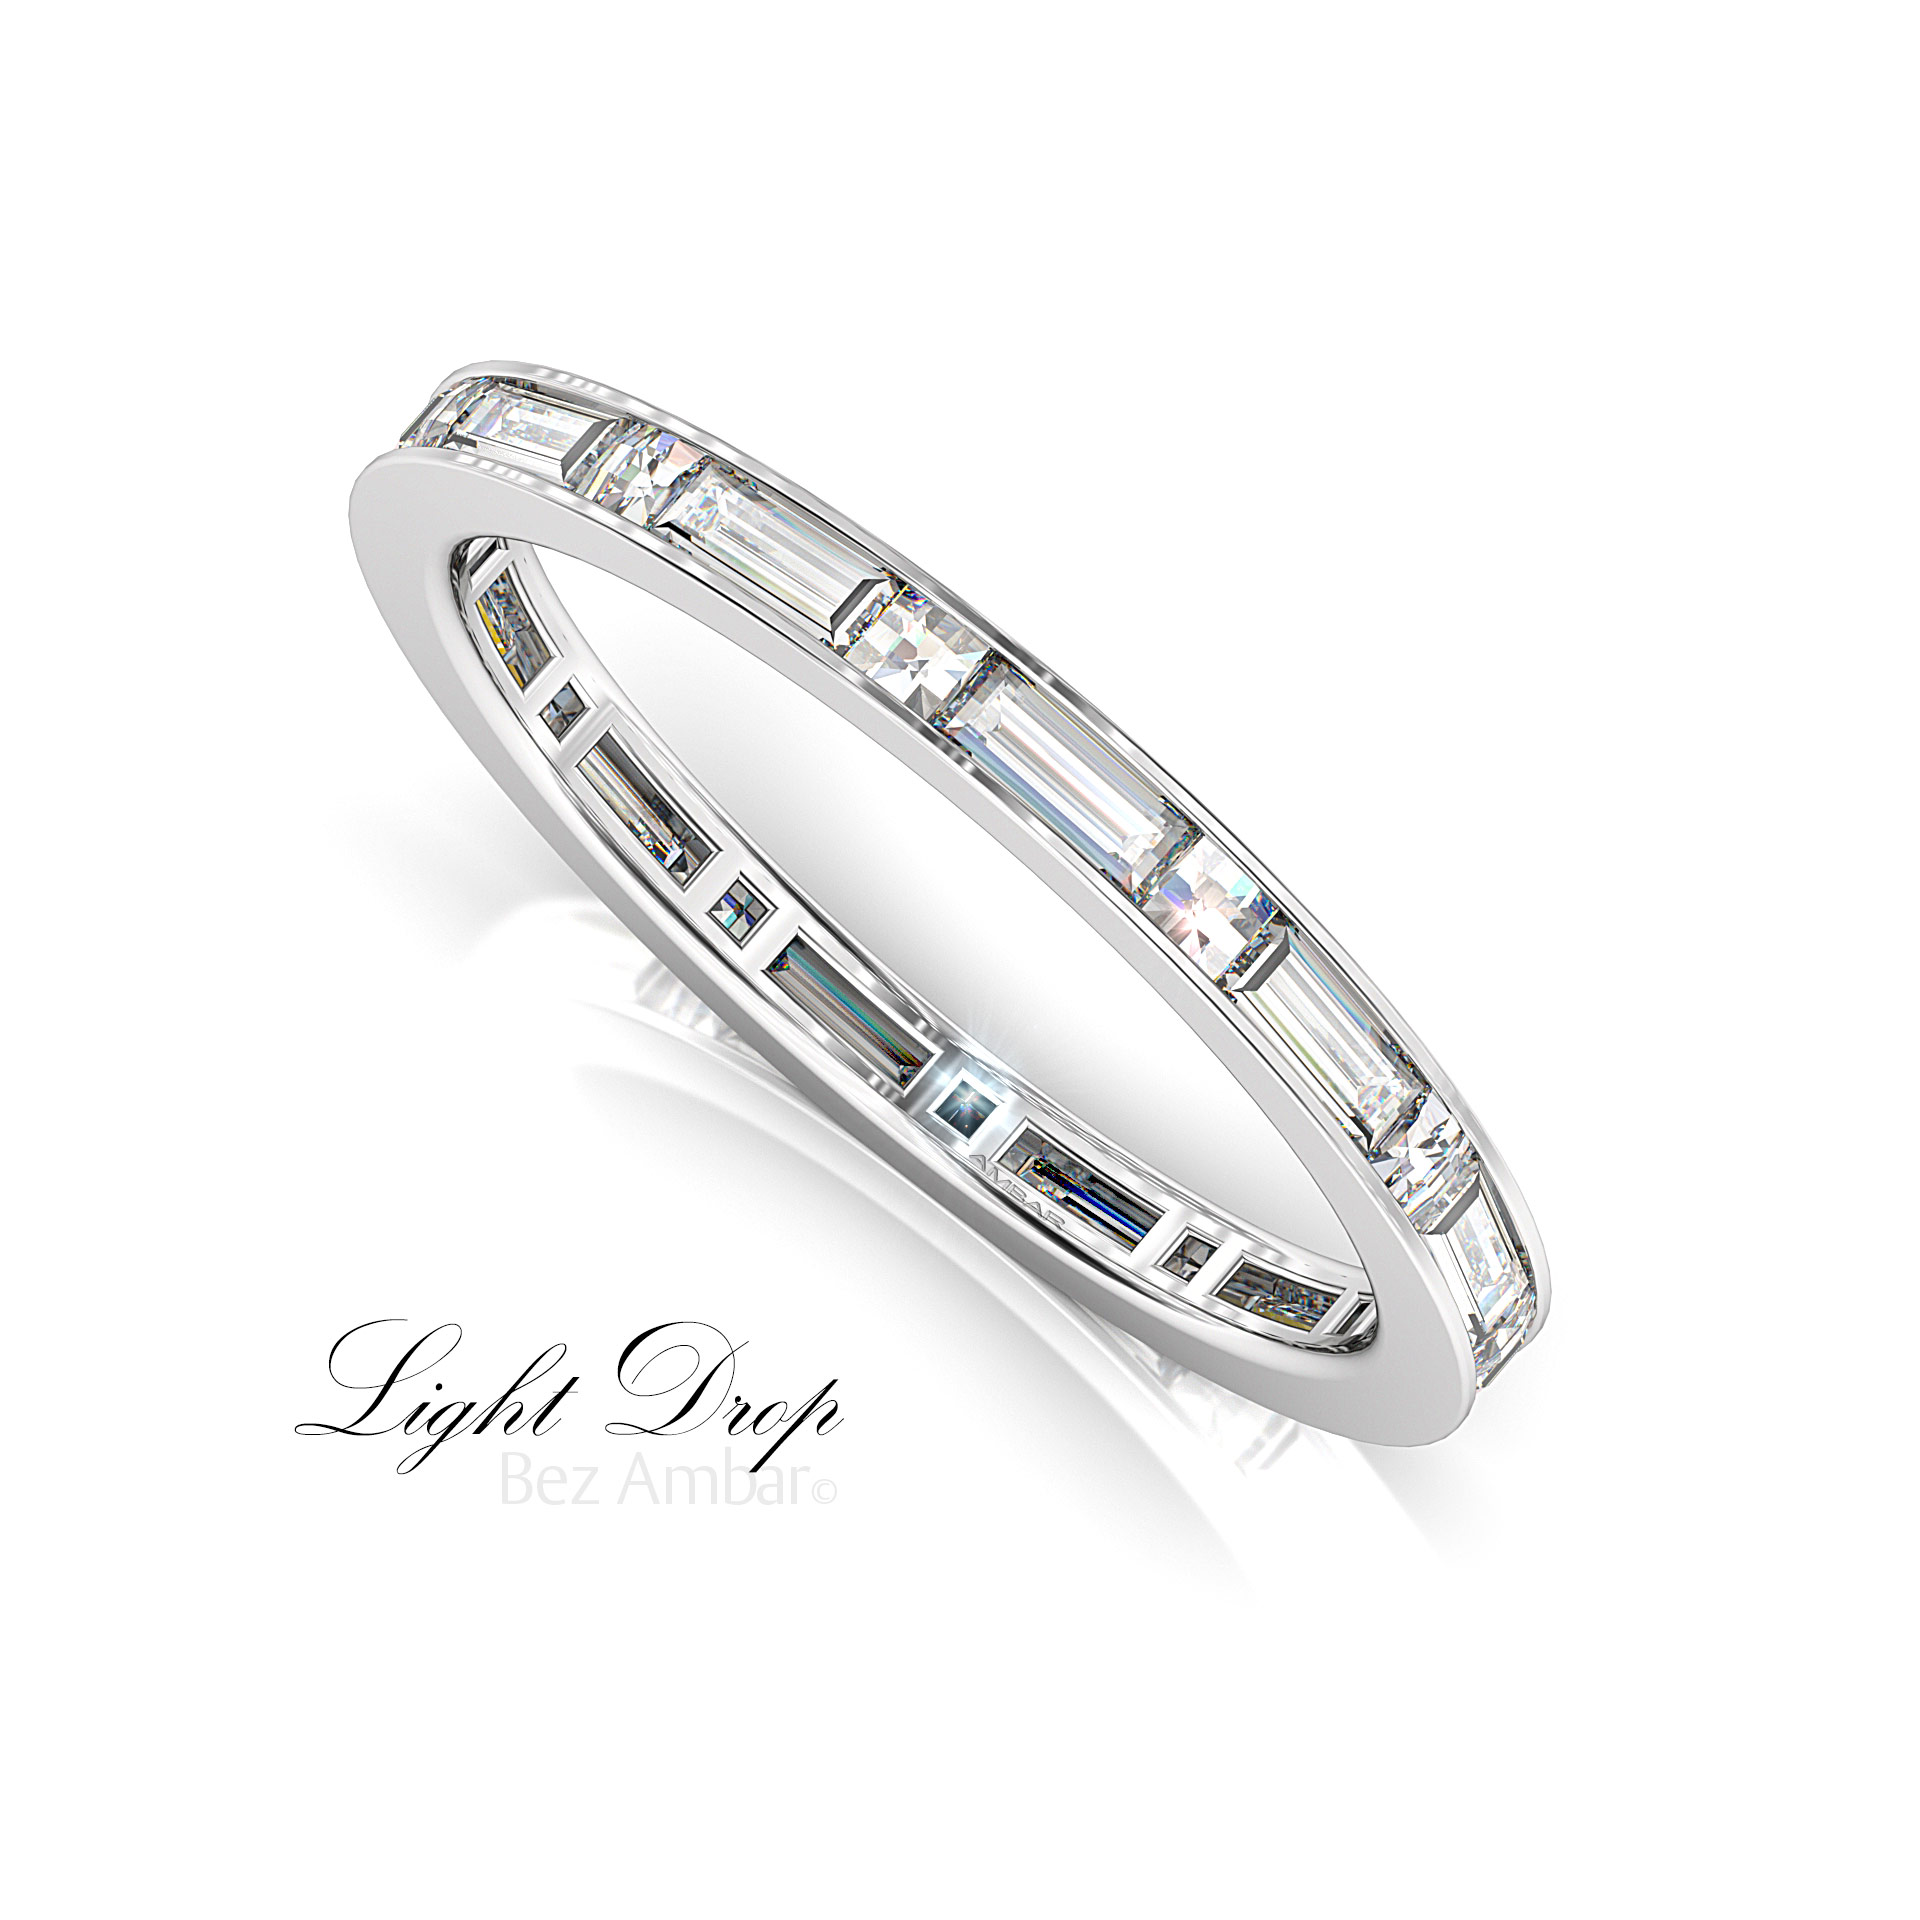 jewellery rings eternity diamond